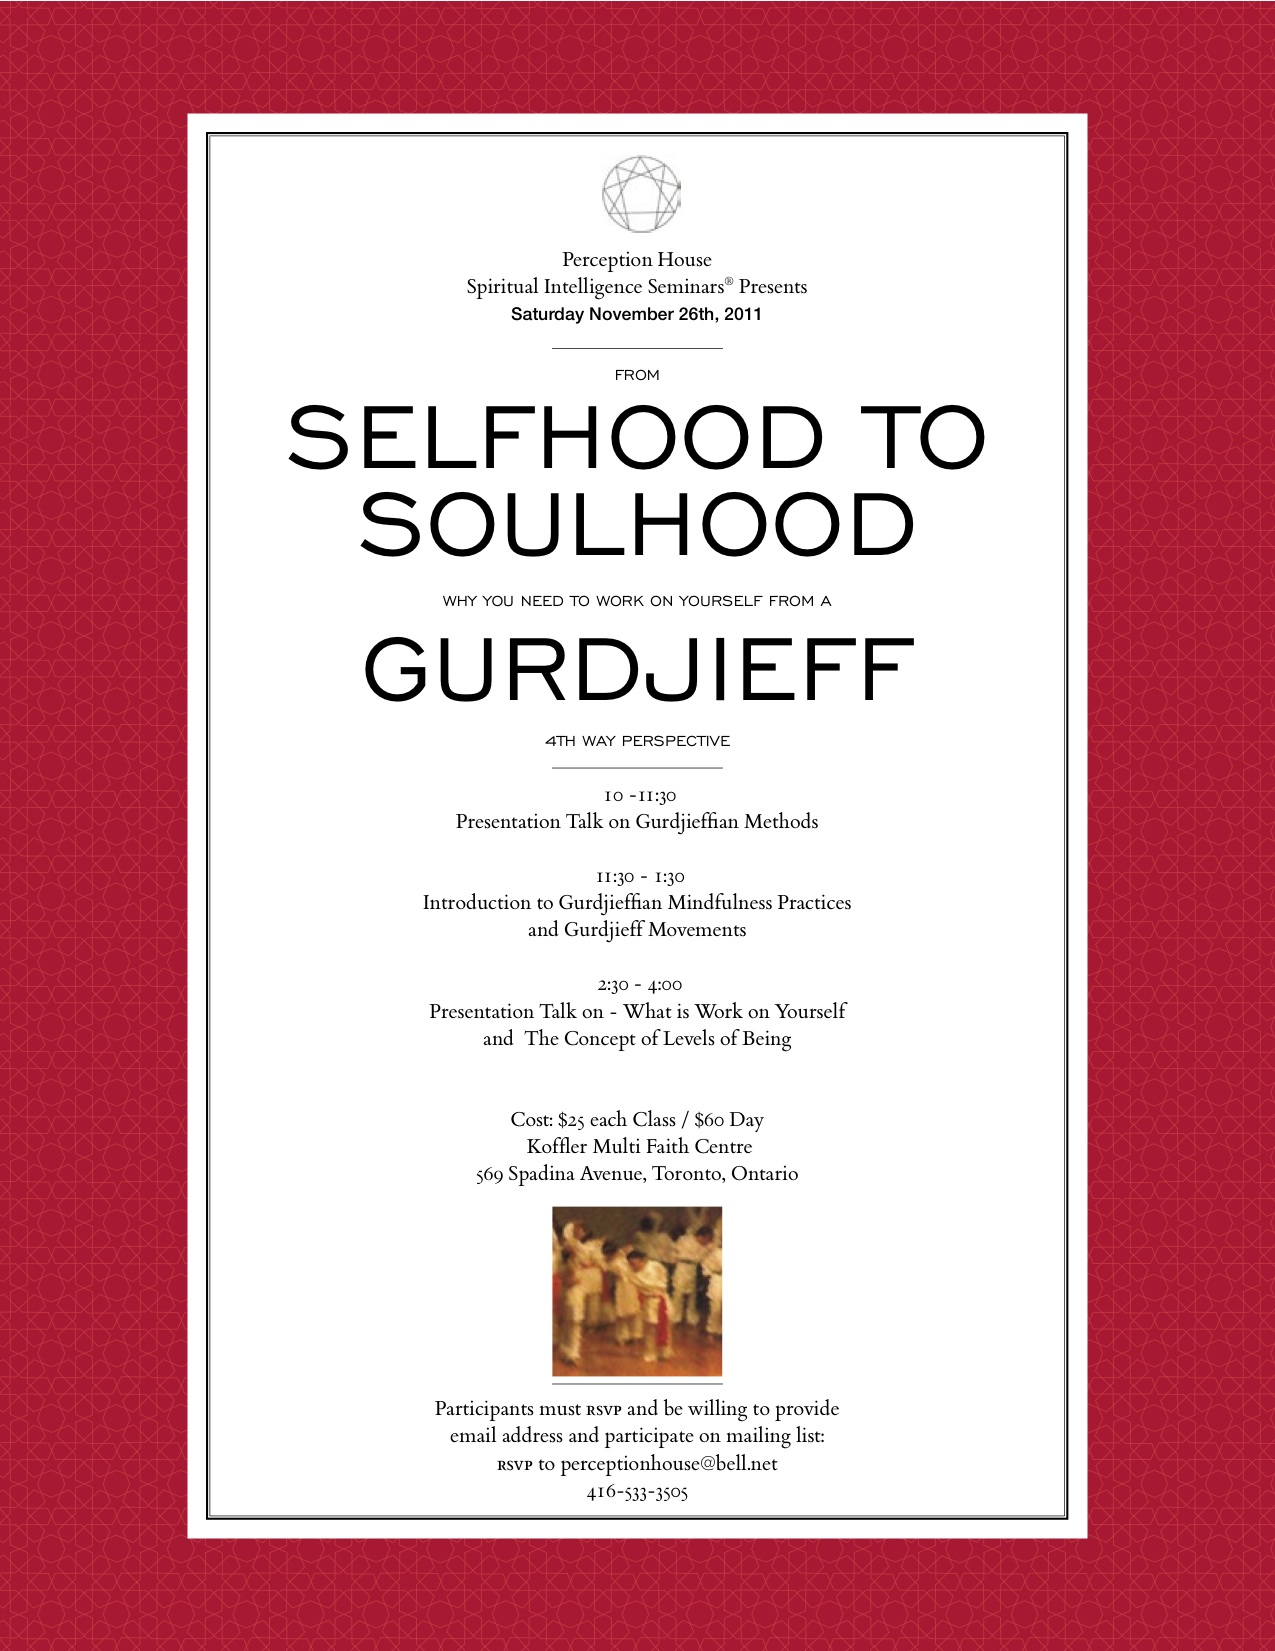 Part I: From Selfhood To Soulhood: Why We Need To Work On Our Self: Conscious Self Development From A Gurdjieff 4th Way Perspective - Ph Posters V1 Dragged